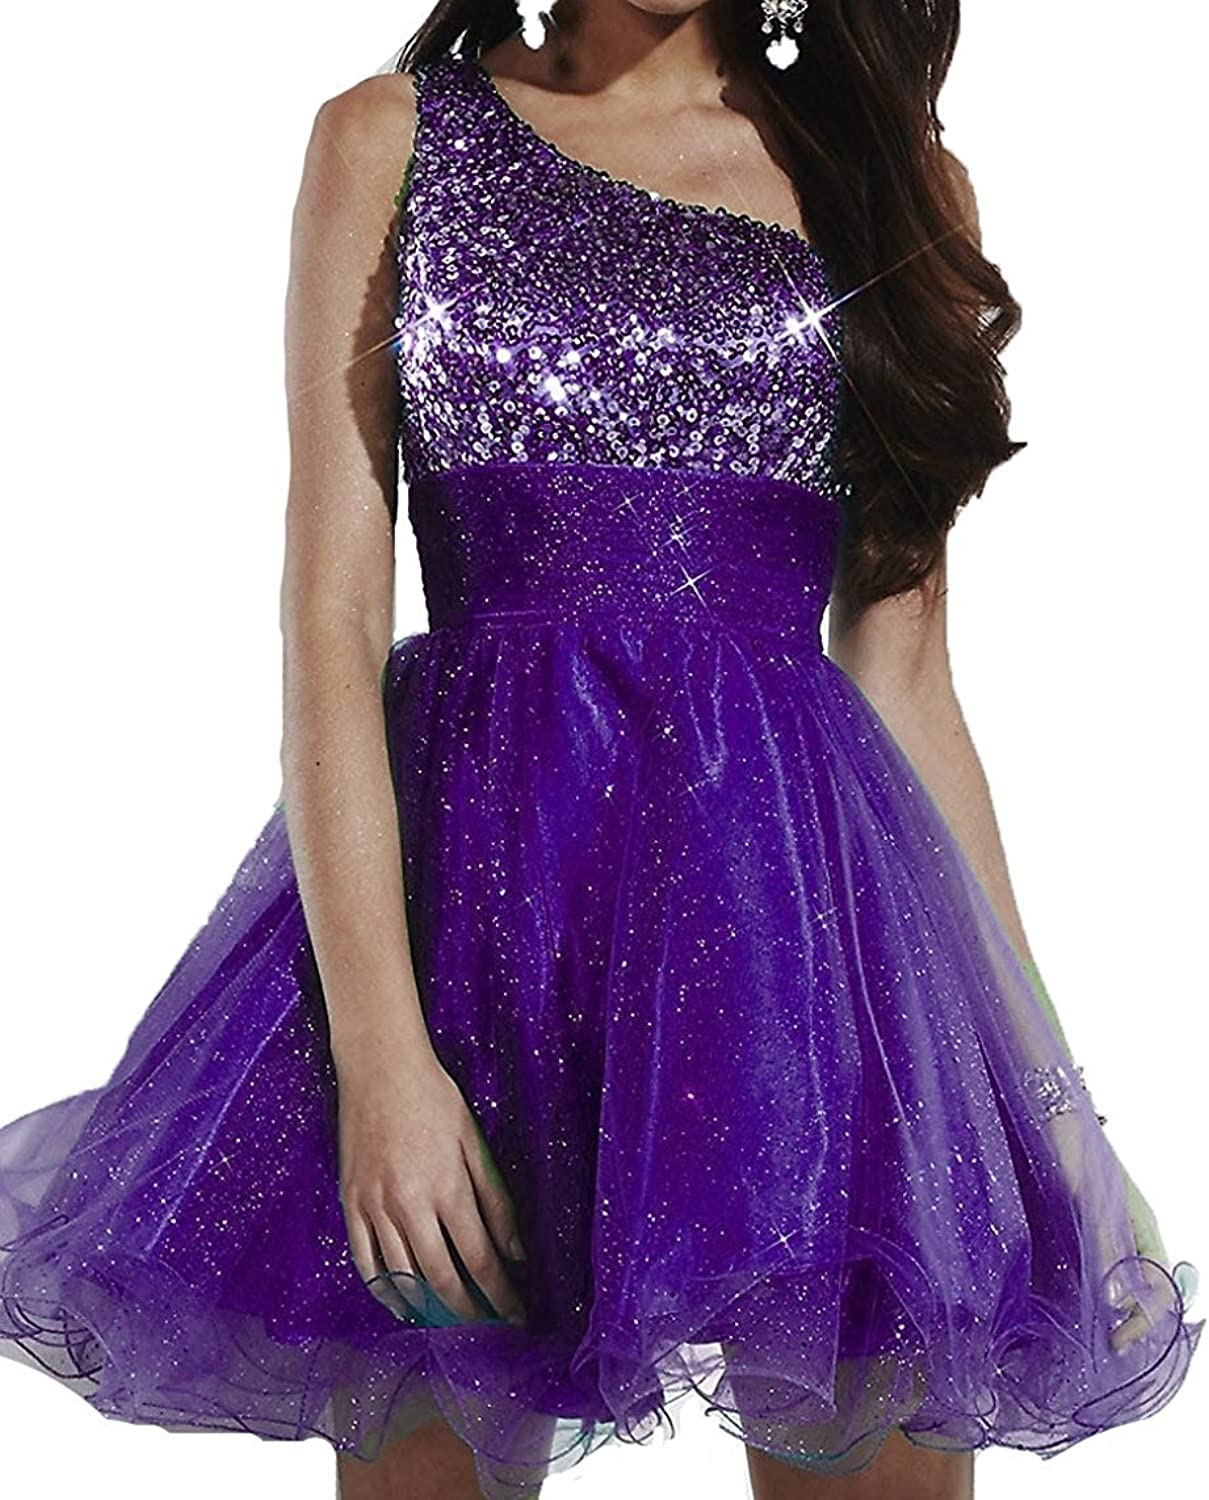 Fashionbride Women's Sequins Tulle Sparkle Homecoming Dresses 2017 Mini Prom Gowns F527